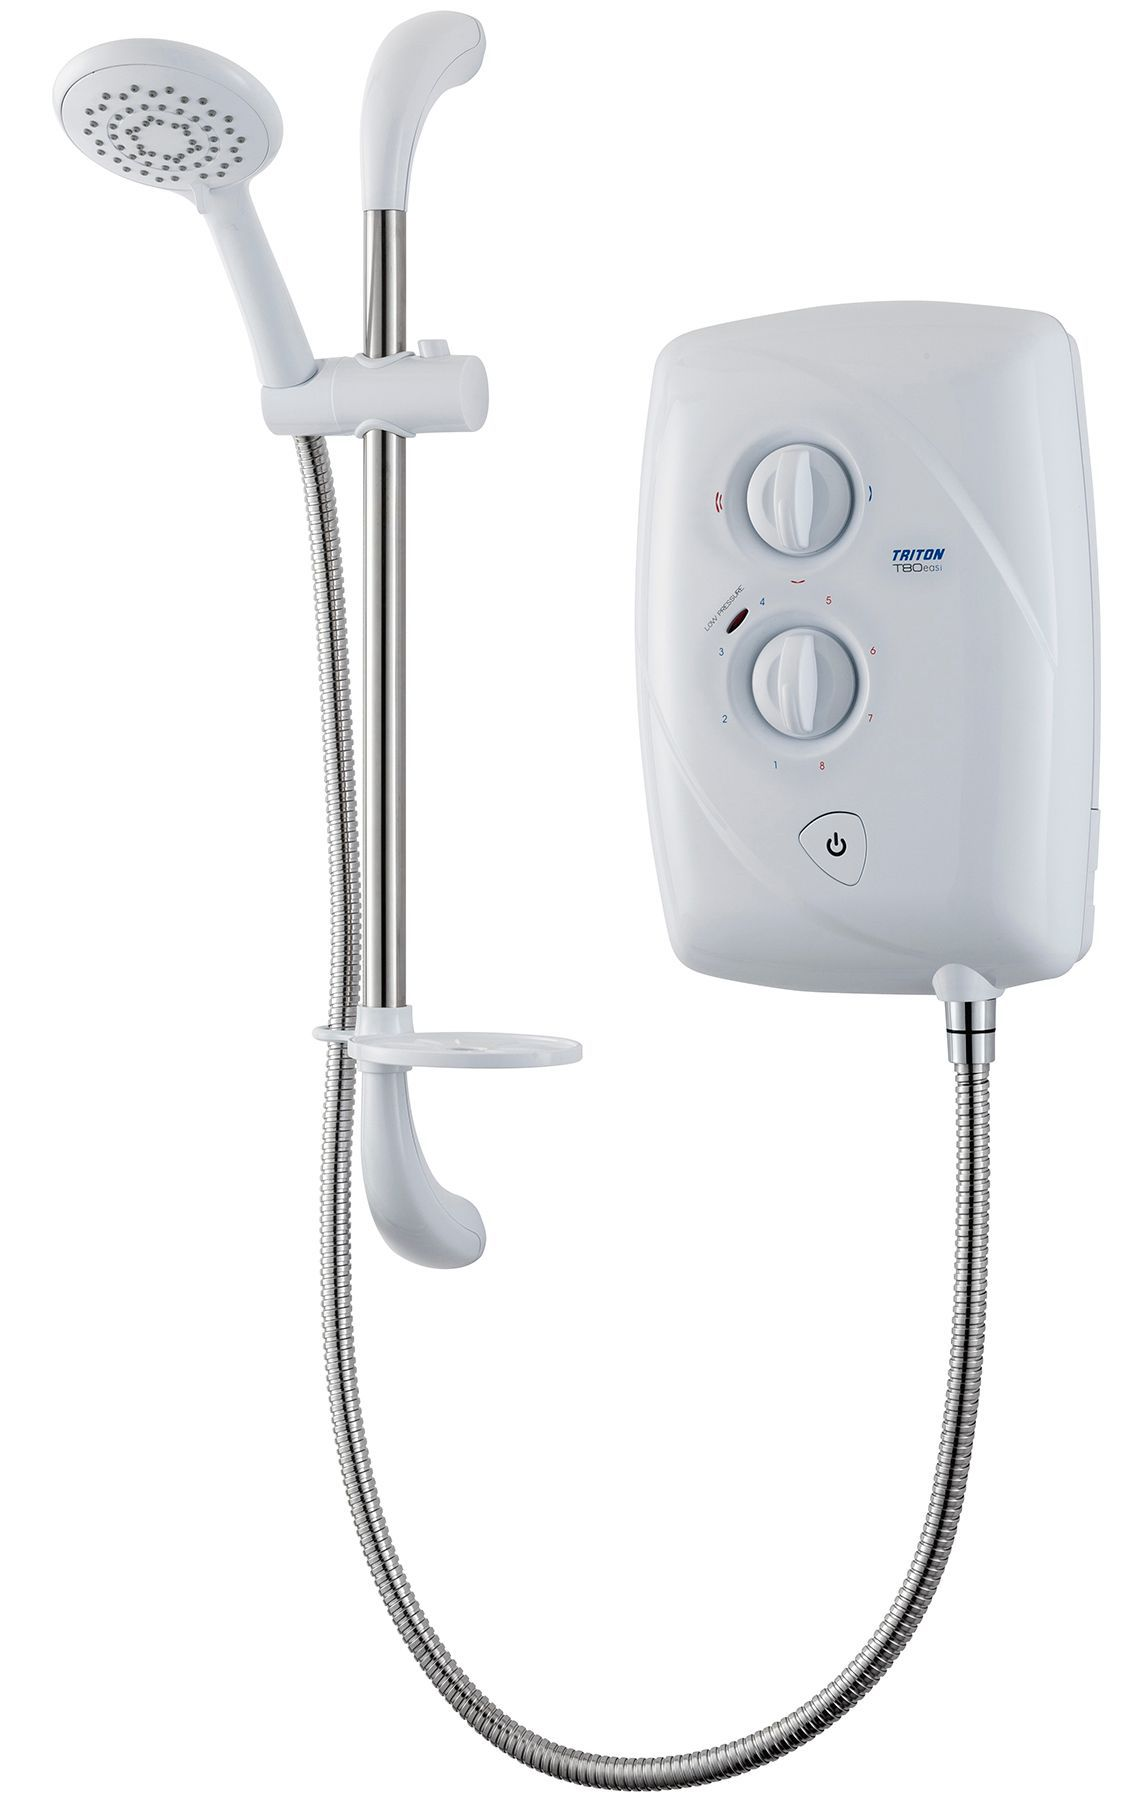 Triton T80 Easi-fit White Electric Shower, 9.5 Kw